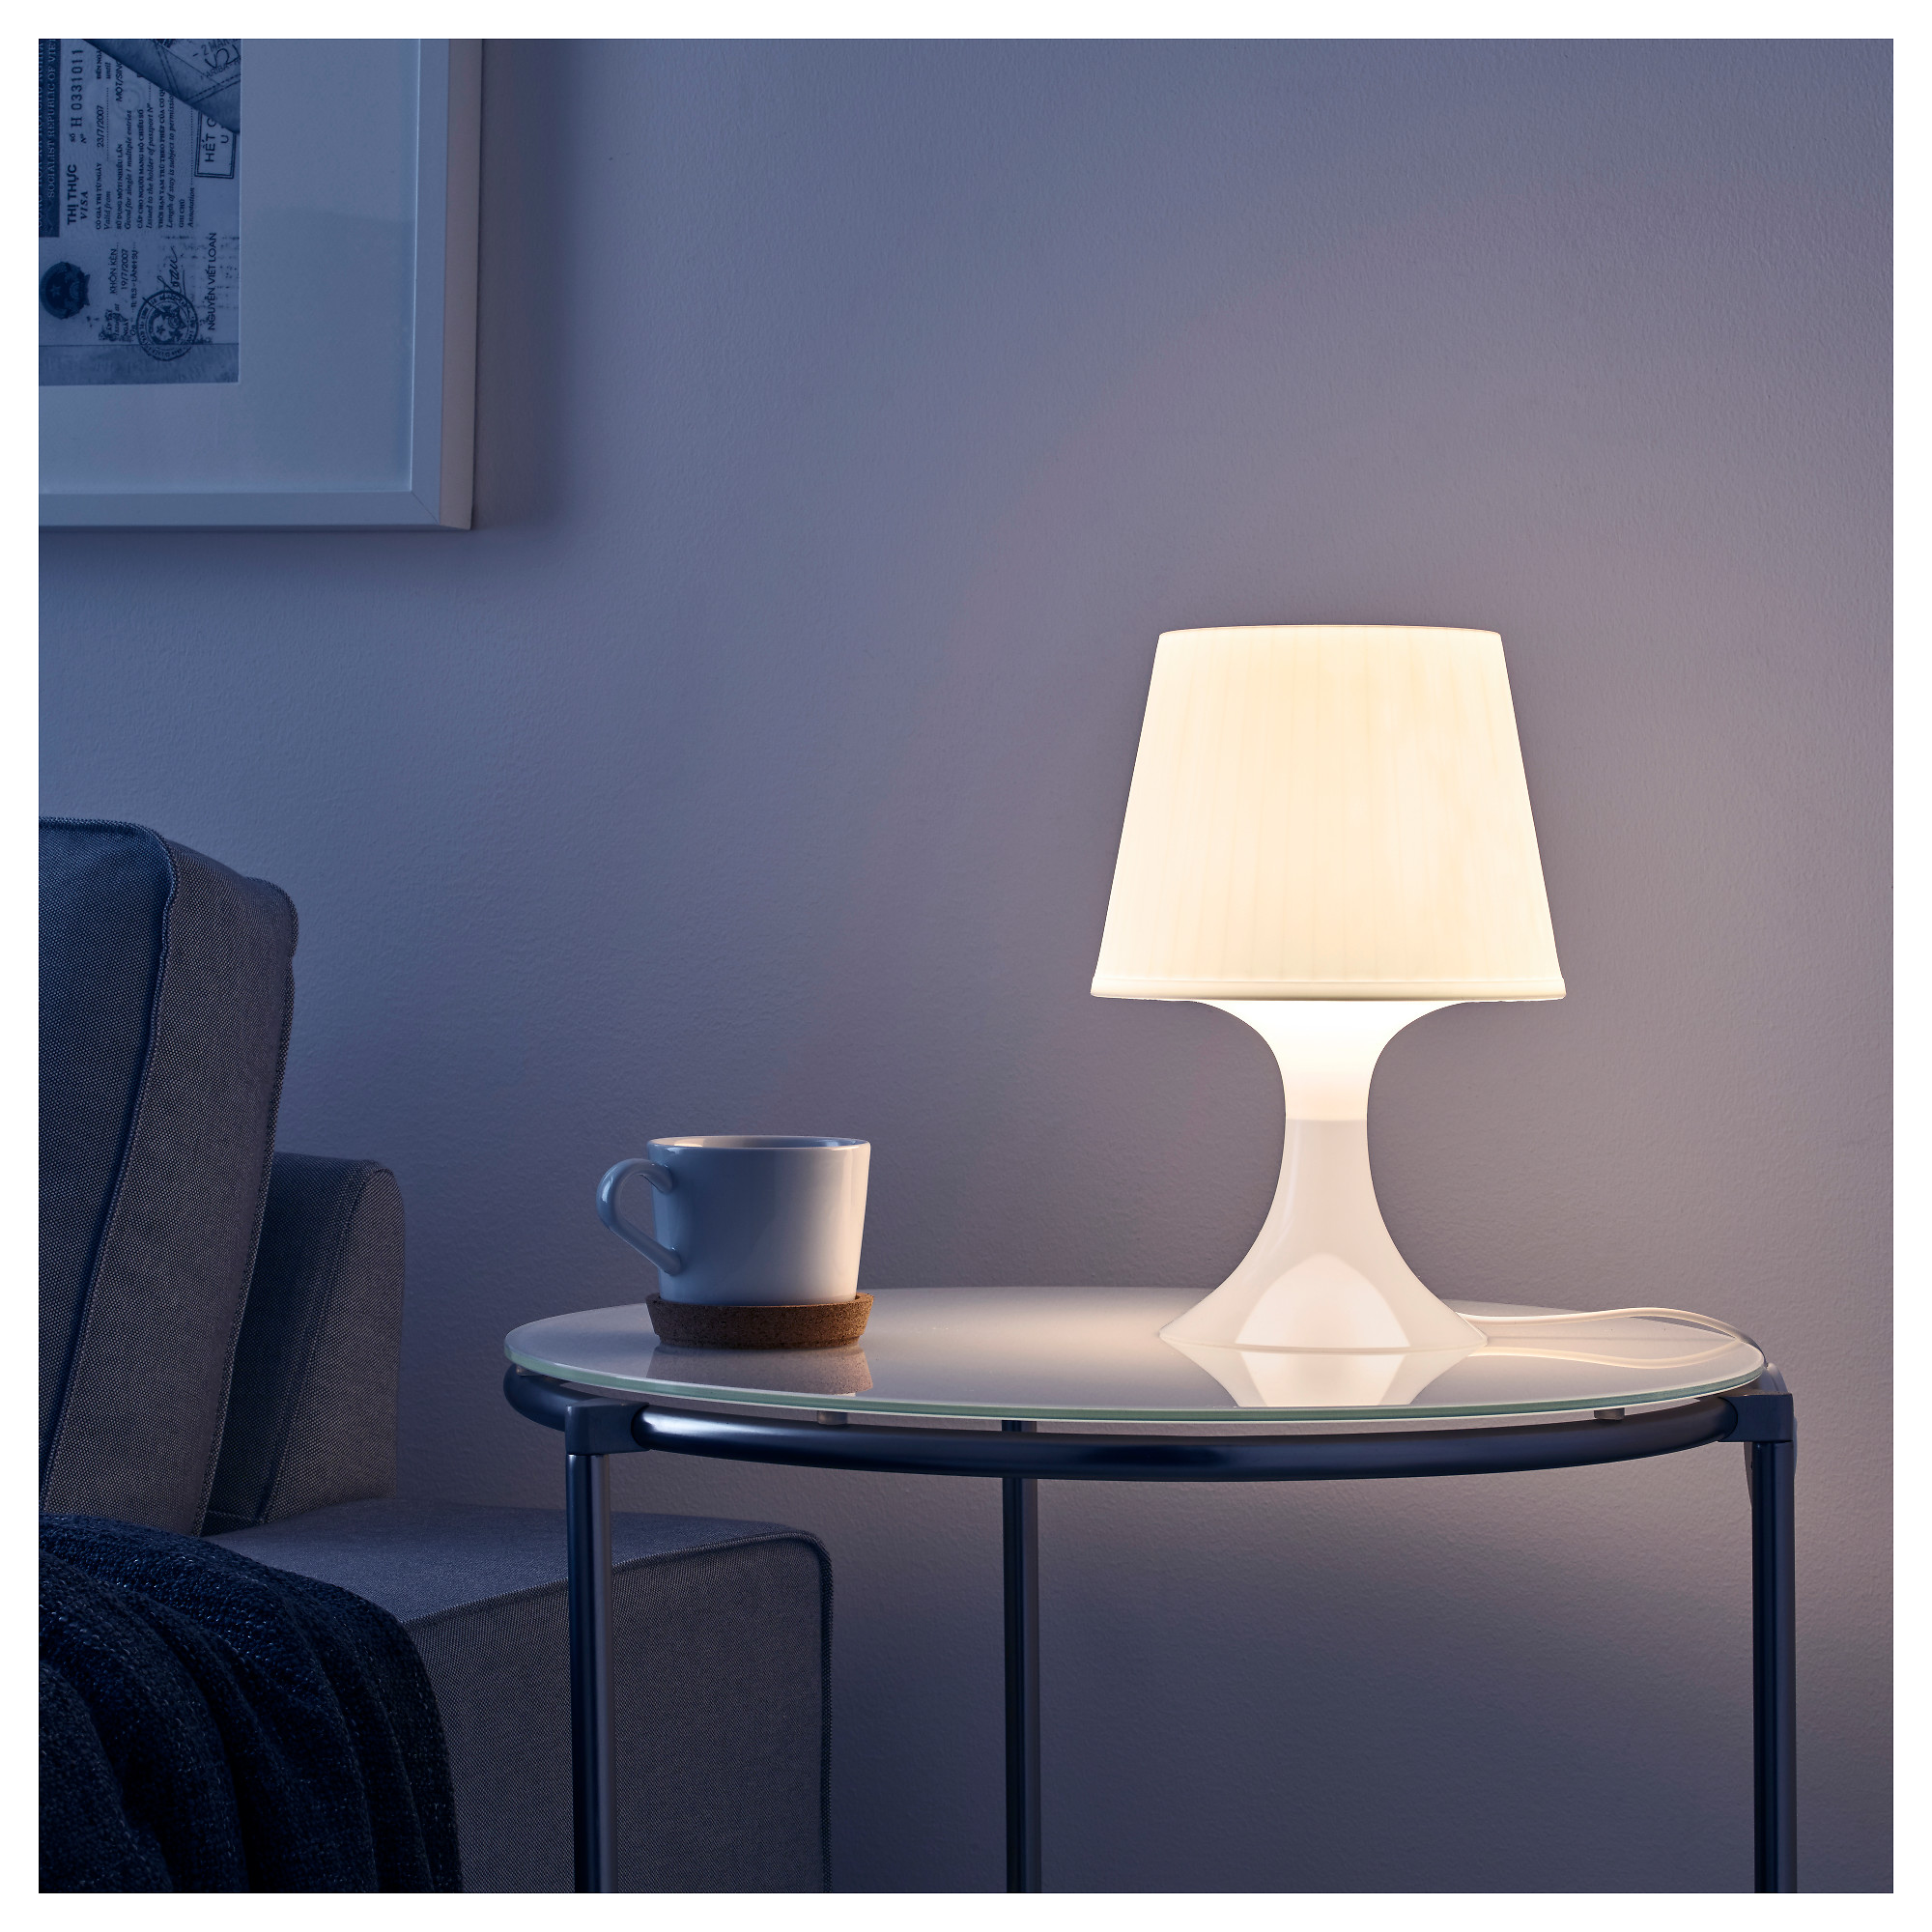 LAMPAN Table lamp with LED bulb IKEA